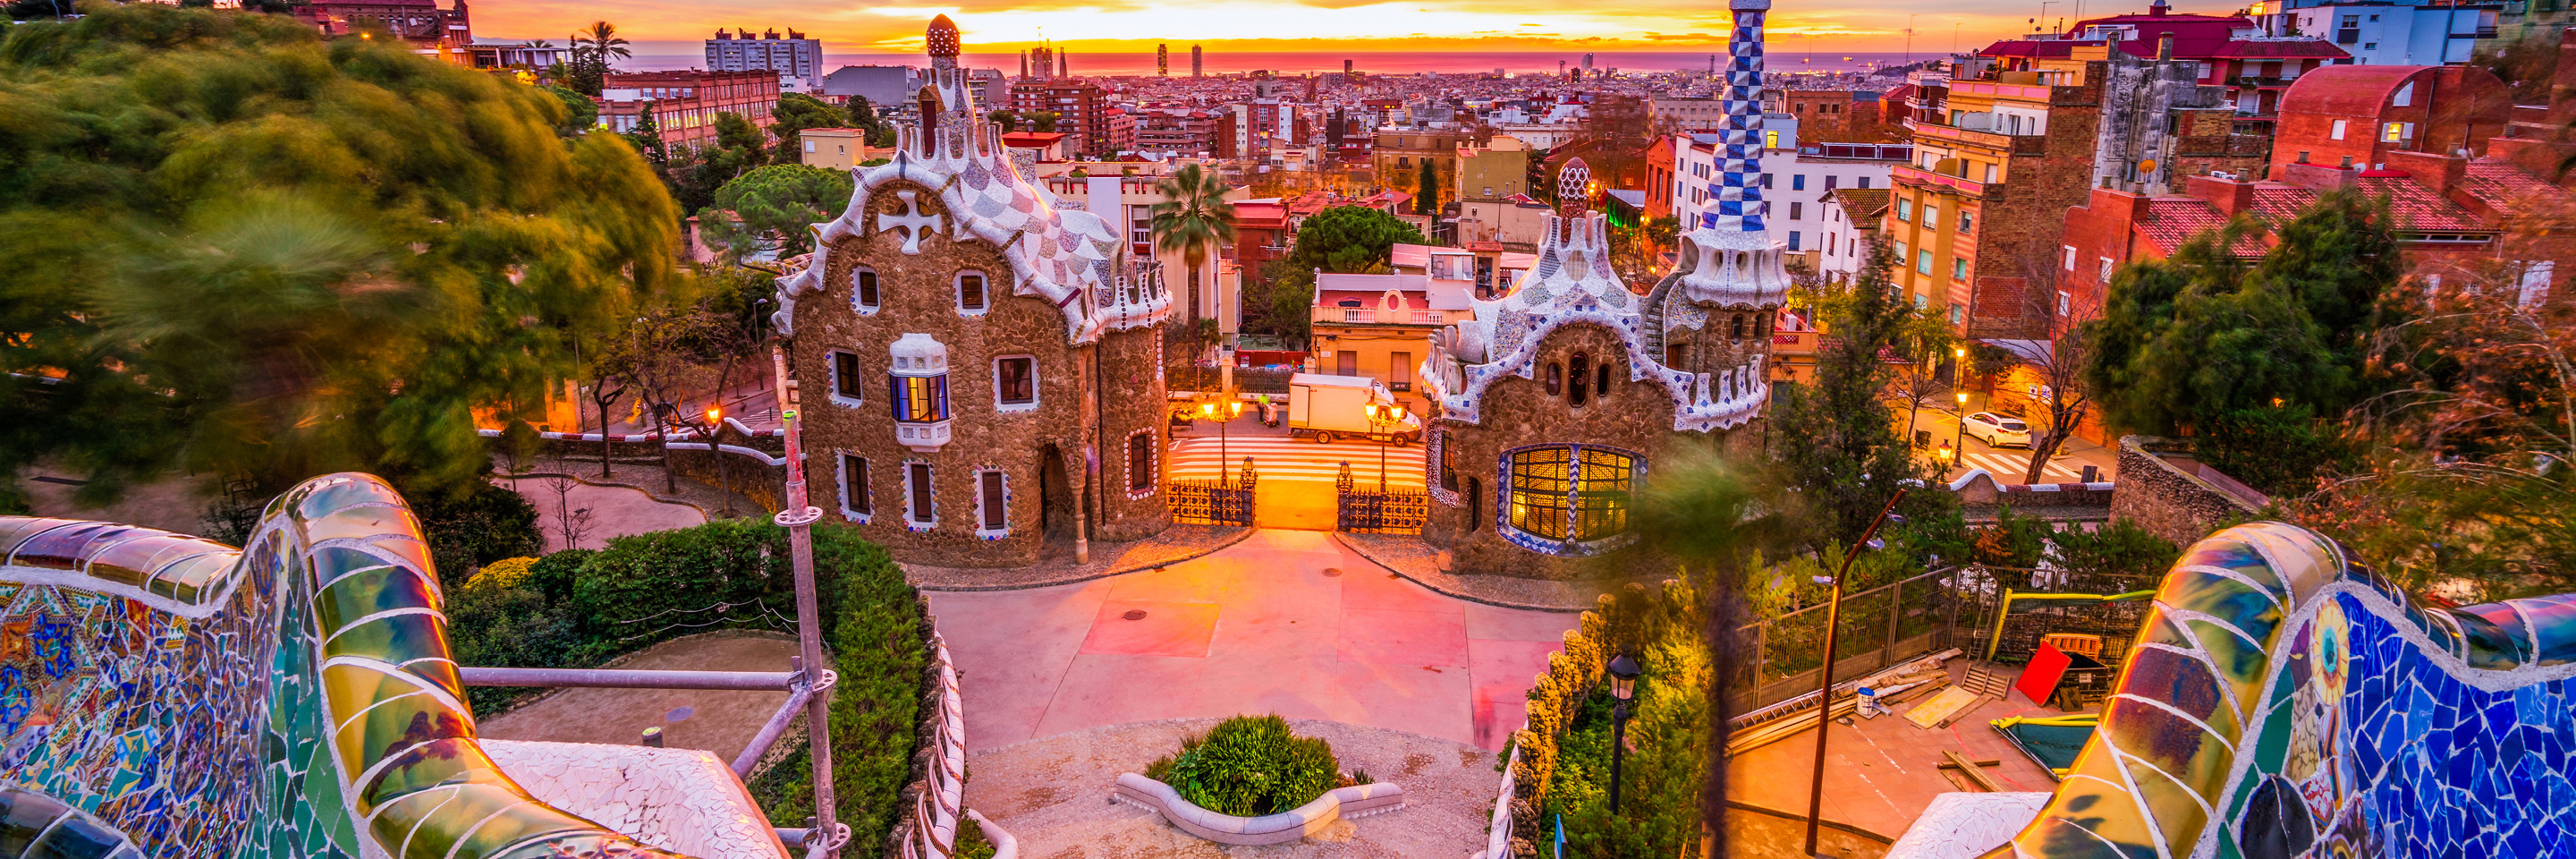 Burgundy and Provence with 2 nights in Paris, 2 nights in Nice & 3 nights in Barcelona